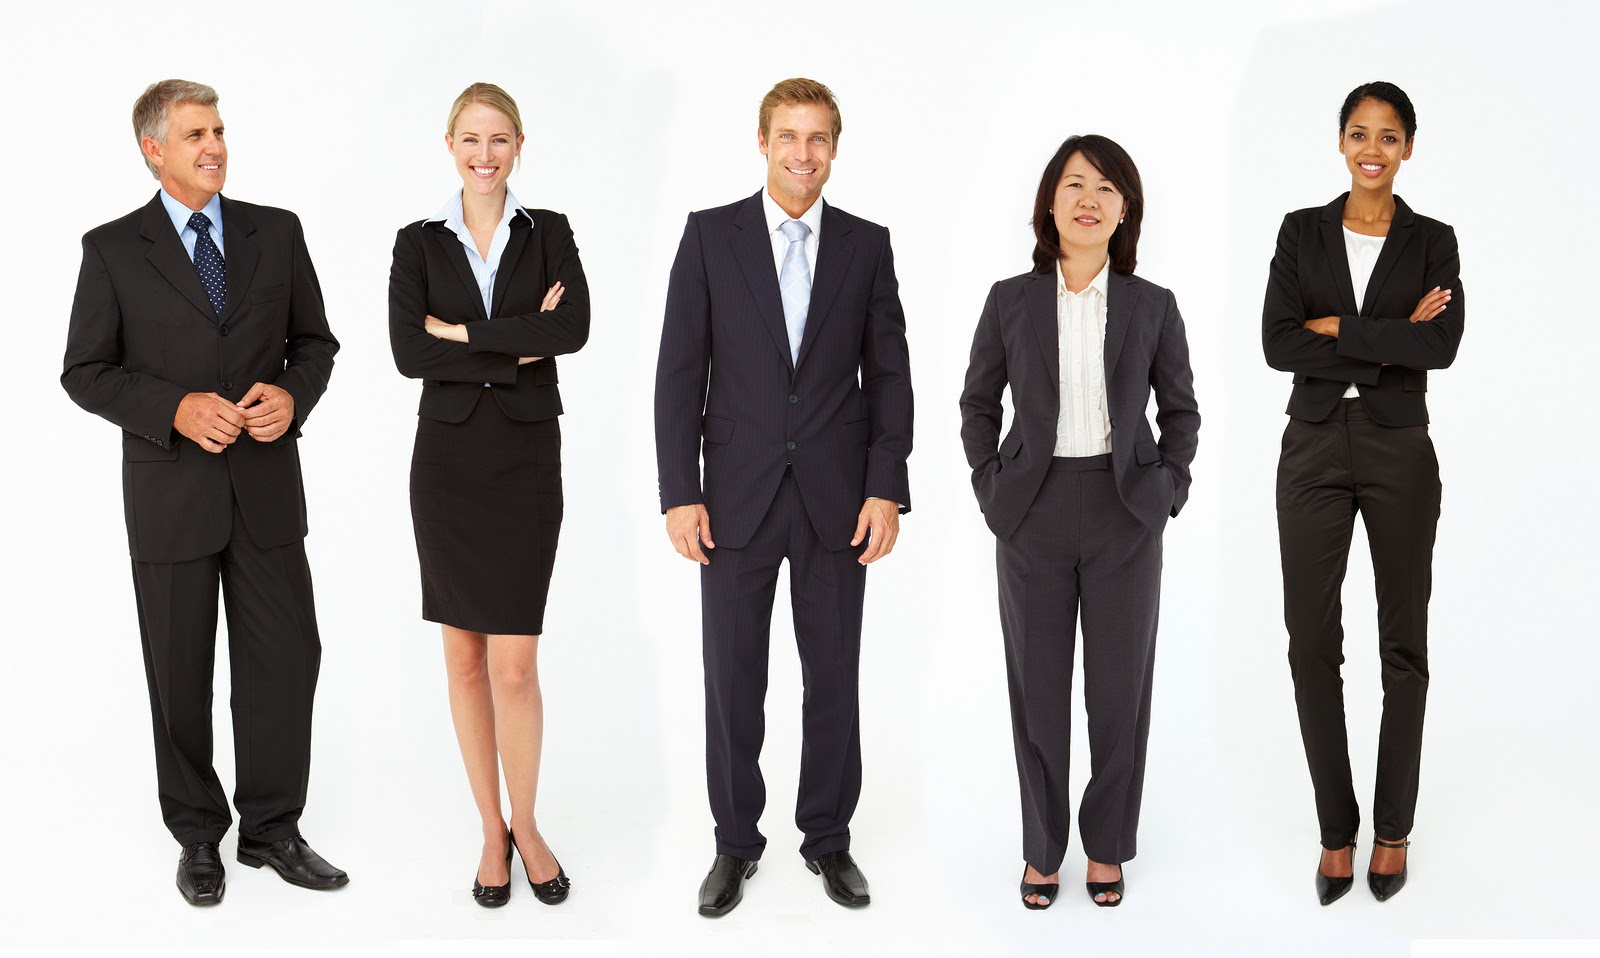 How to Dress for a Human Resources Job